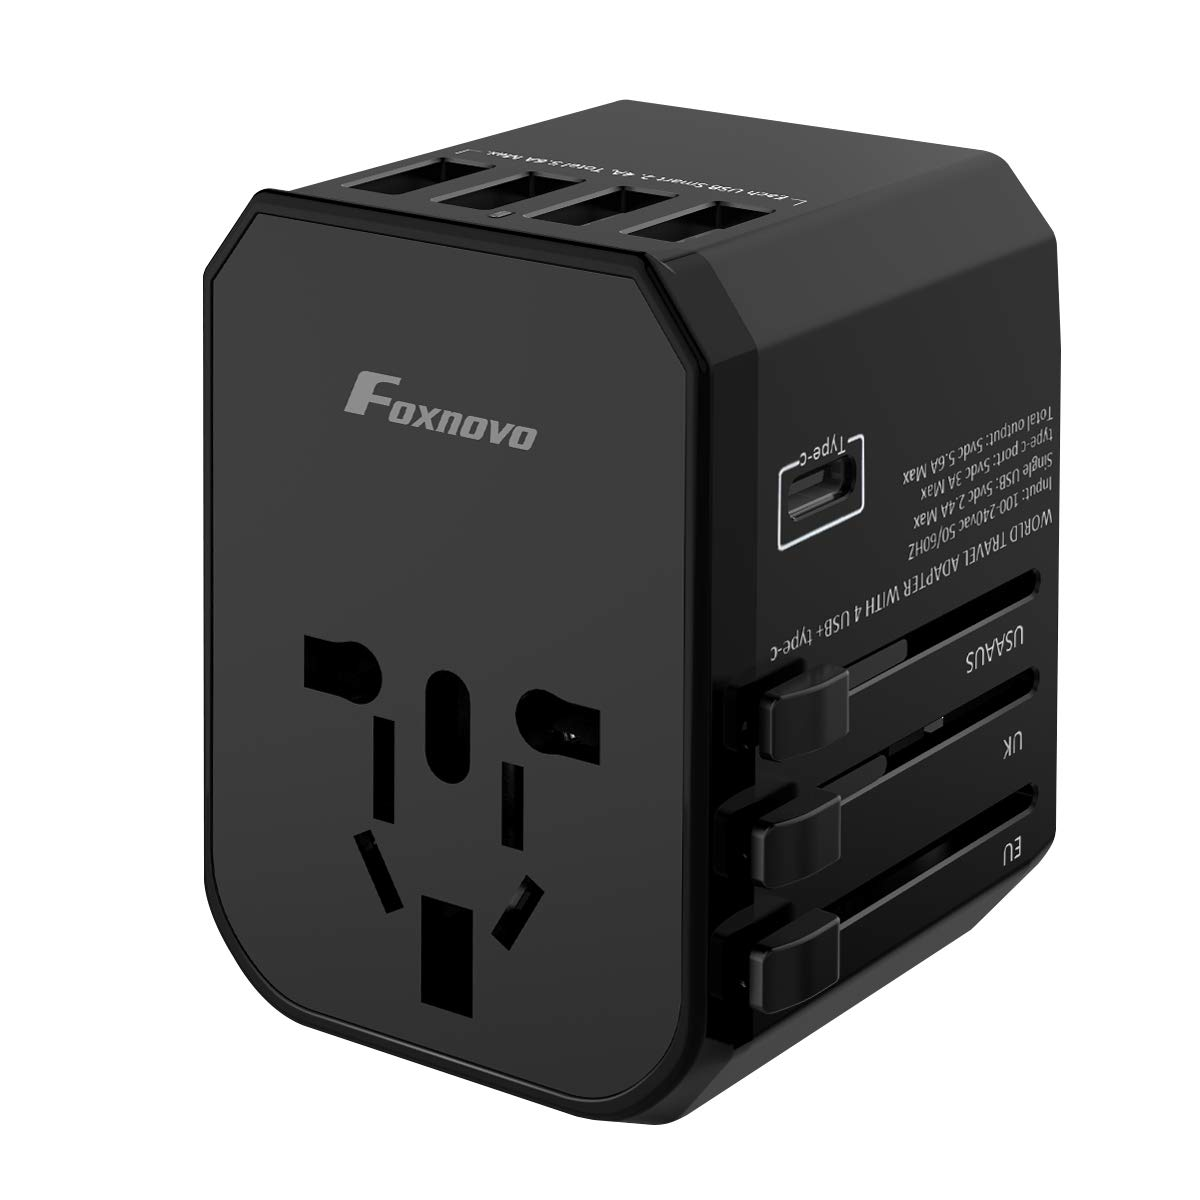 Travel Power Adapter, Foxnovo Universal Power Adapter All in One Worldwide Travel AC Plug Converter Wall Charger with 4 USB A and Type-C for US UK EU AU Asia Cell Phone Tablet Laptop